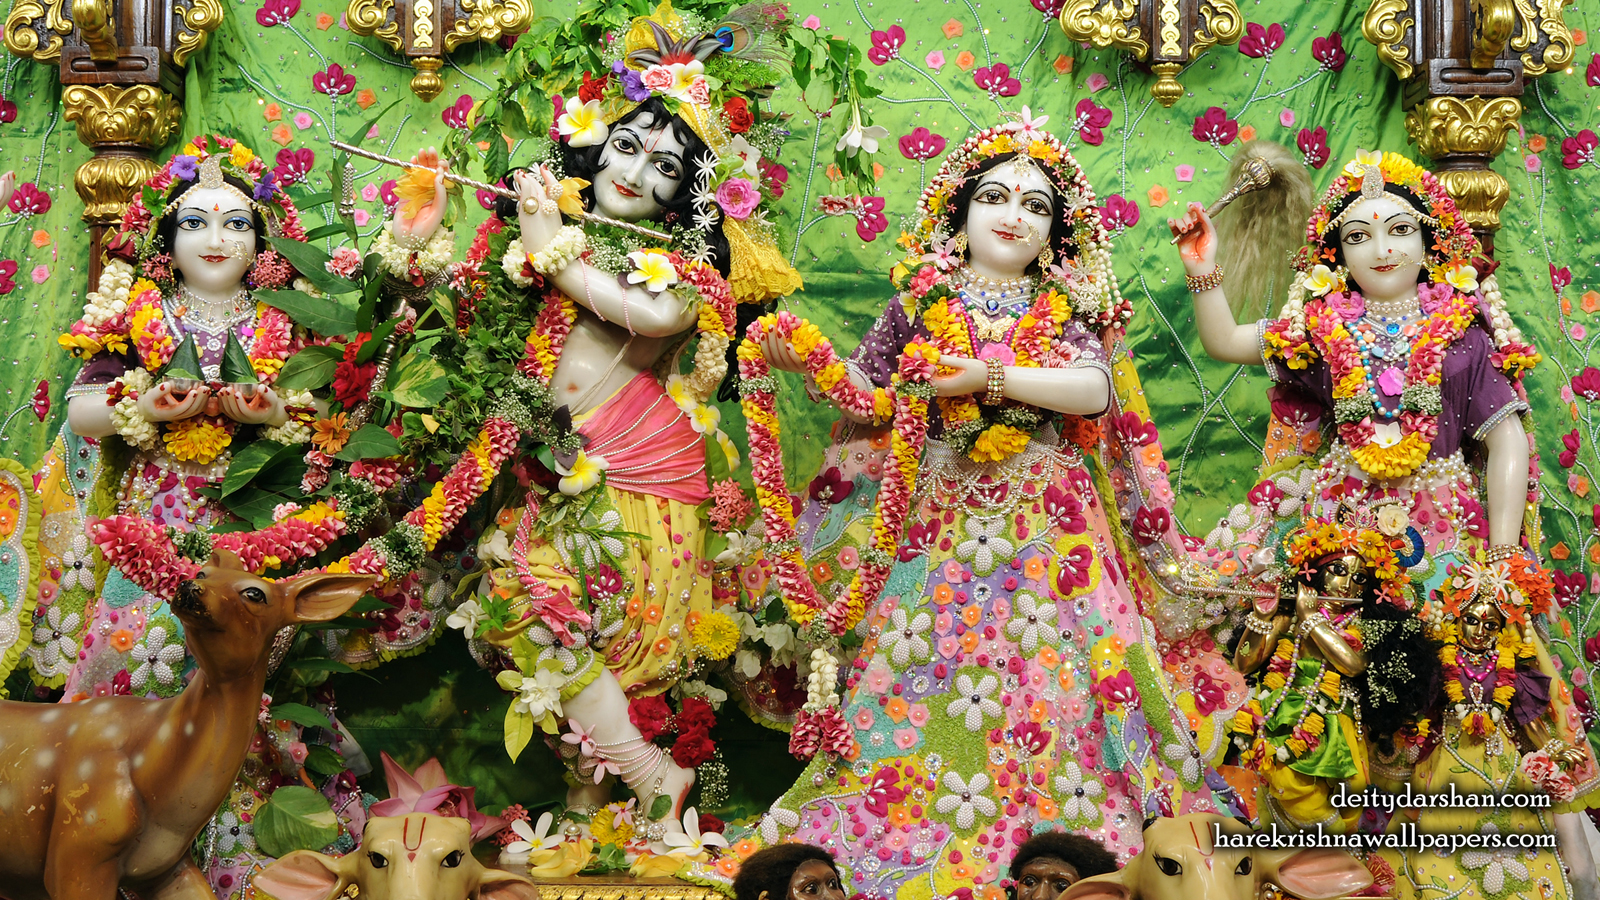 Sri Sri Radha Gopinath Lalita Vishakha Wallpaper (060) Size 1600x900 Download